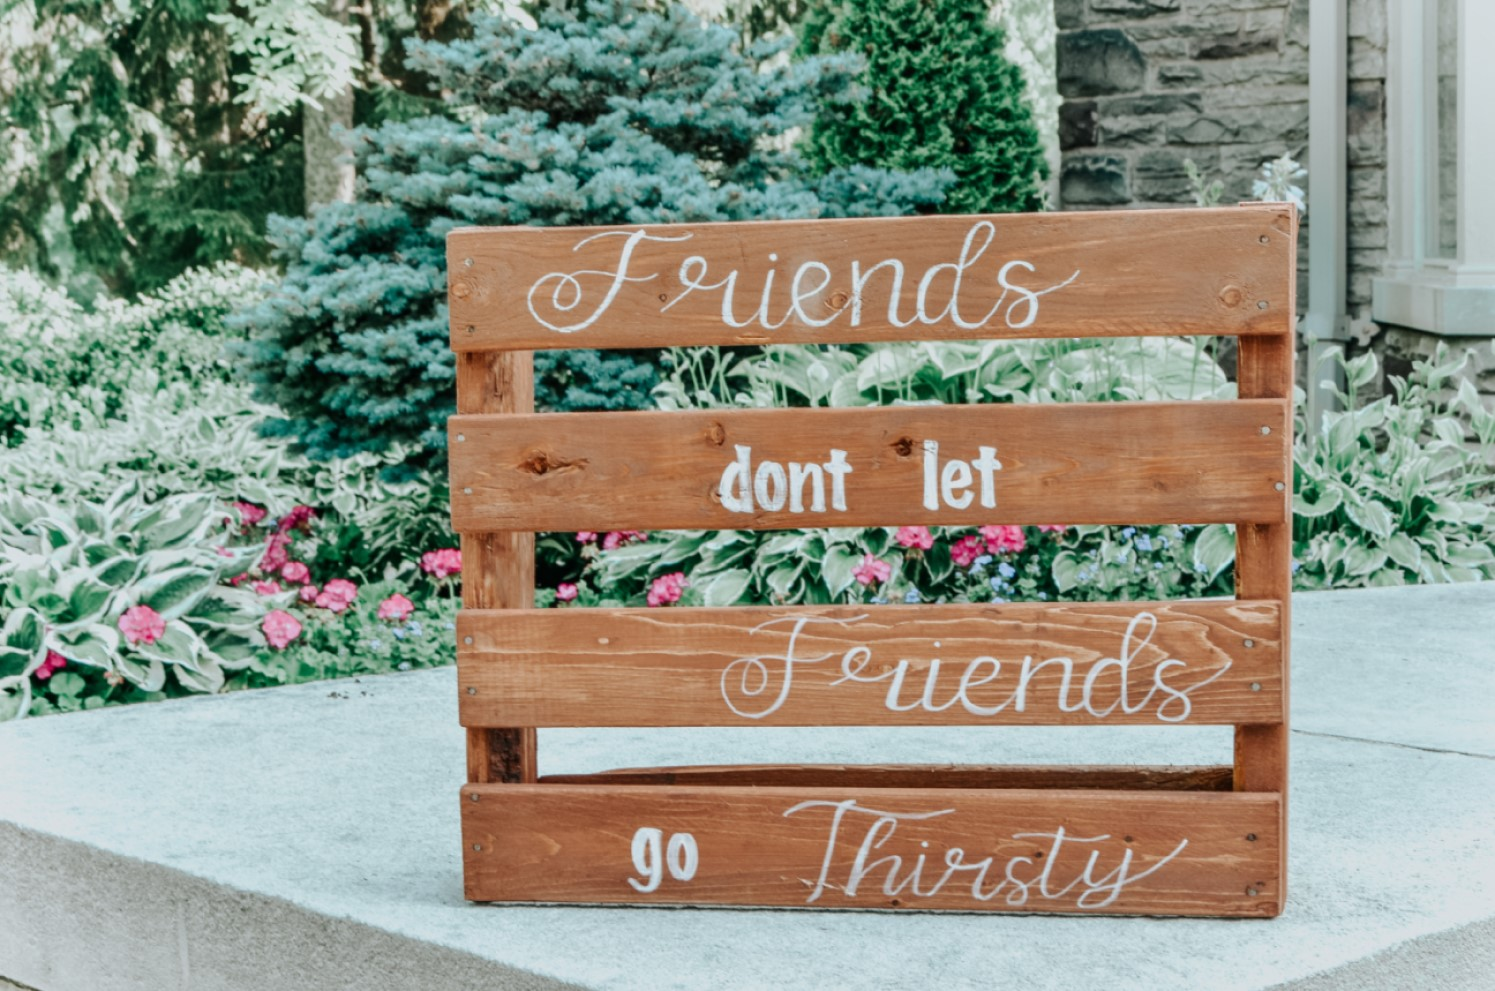 Find Me Lettering Wooden Reception Signage.jpg